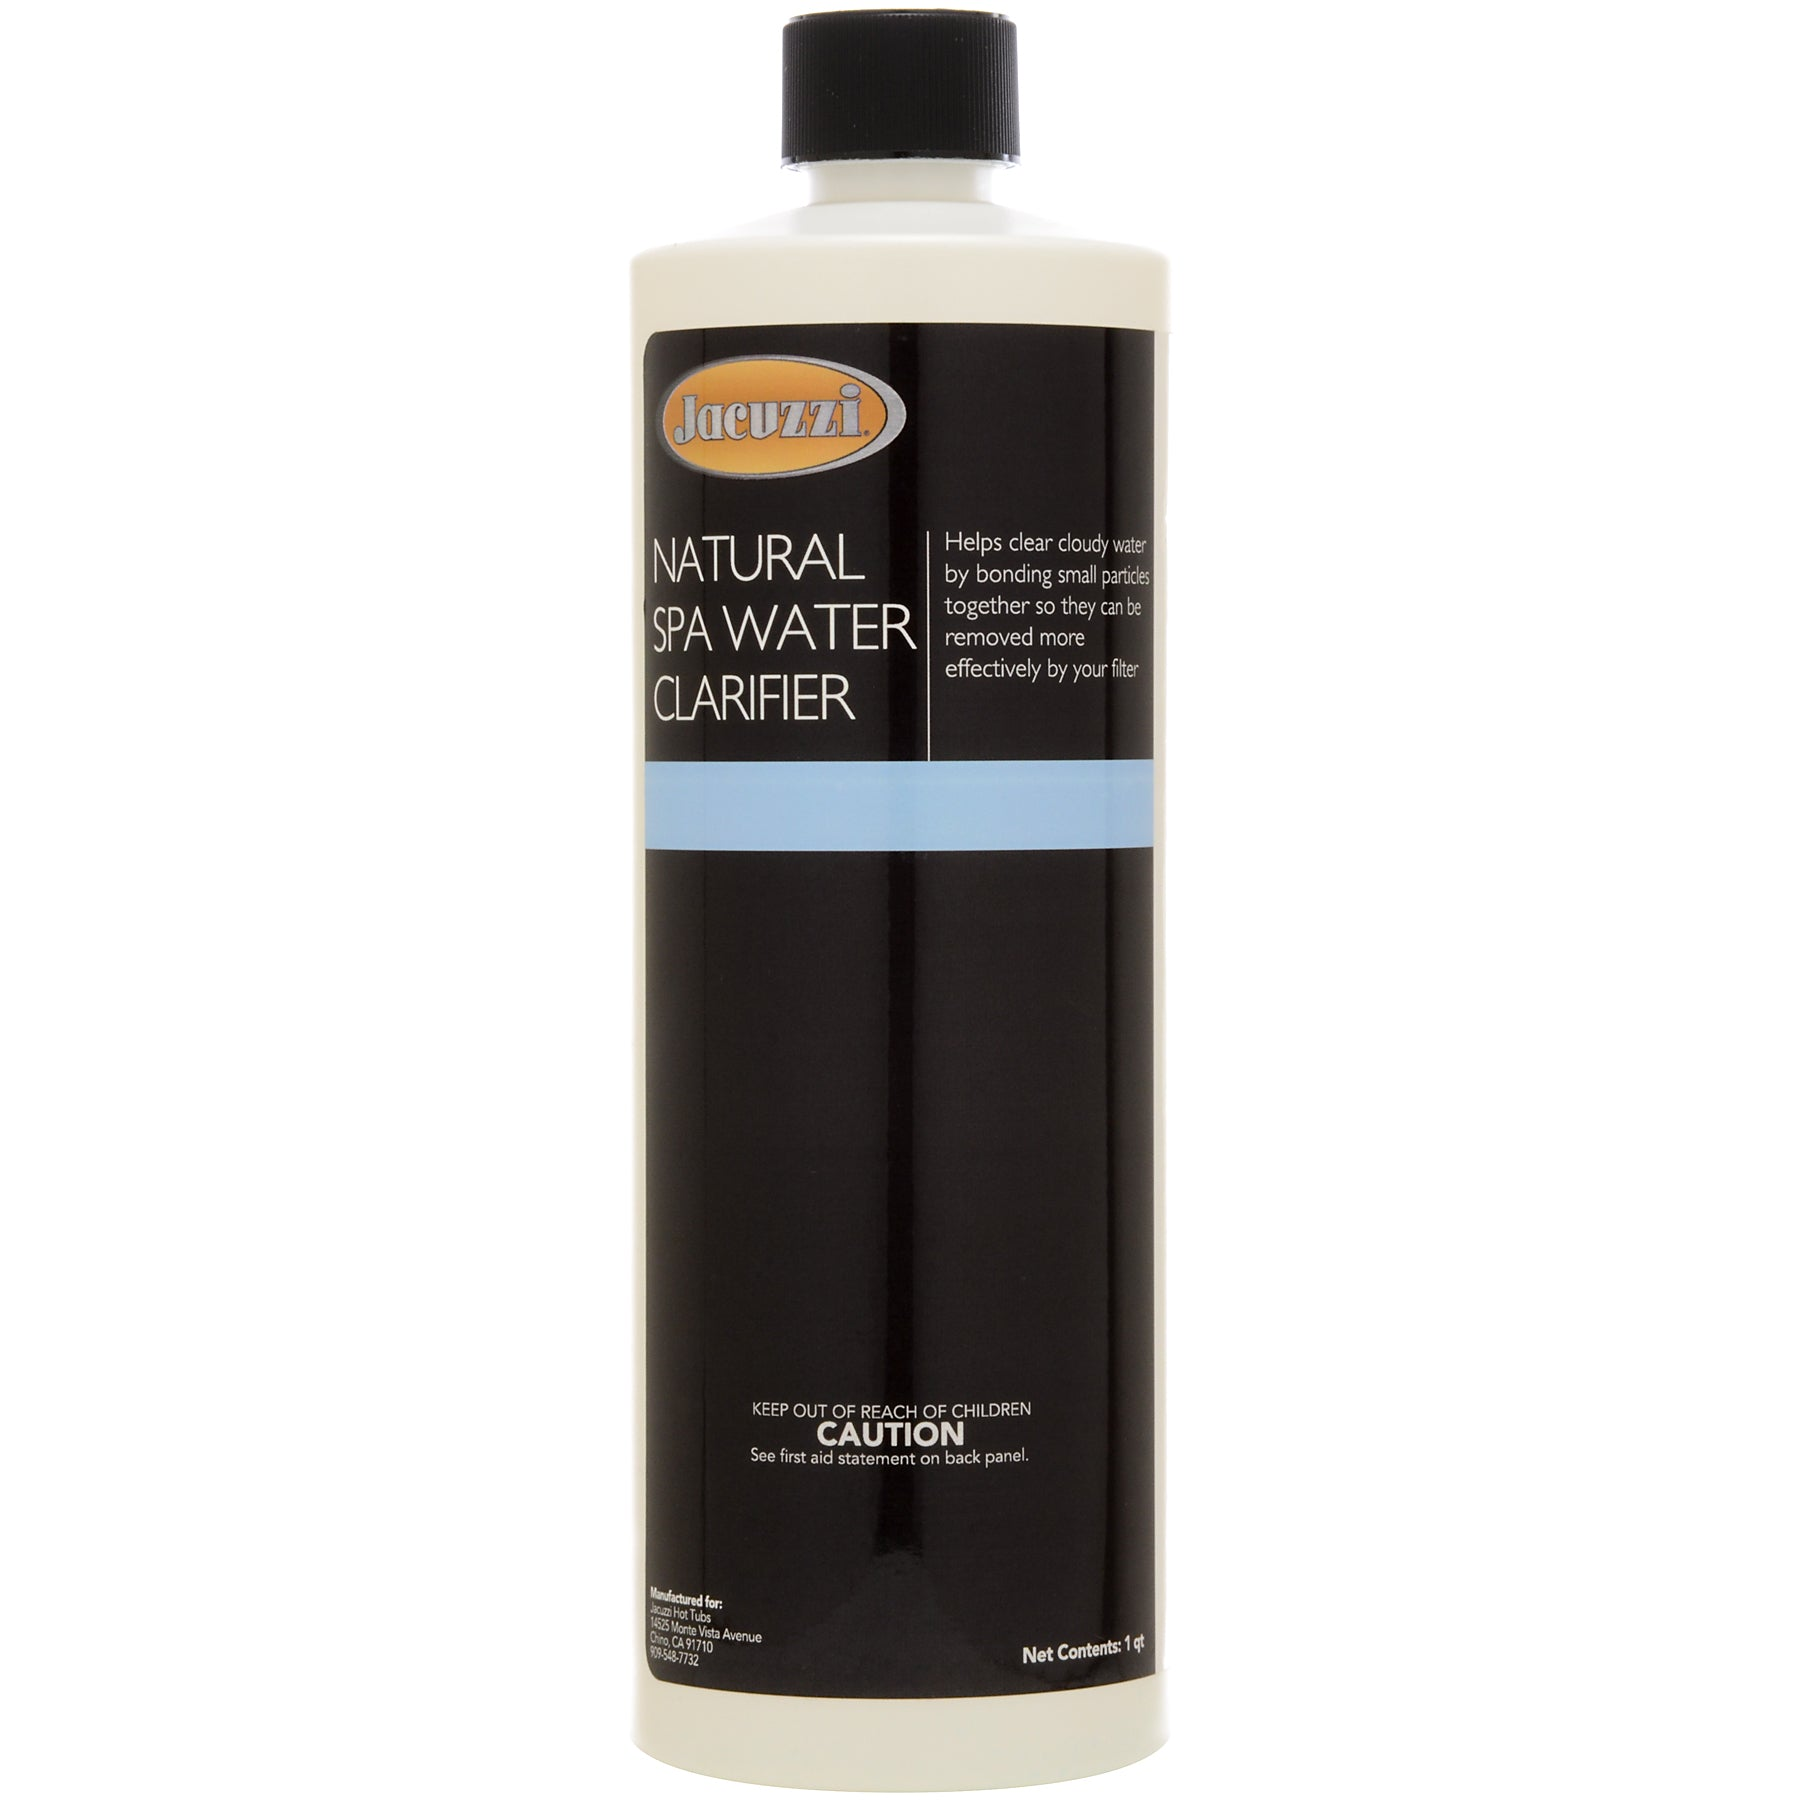 jacuzzi natural spa water clarifier, water clarifier